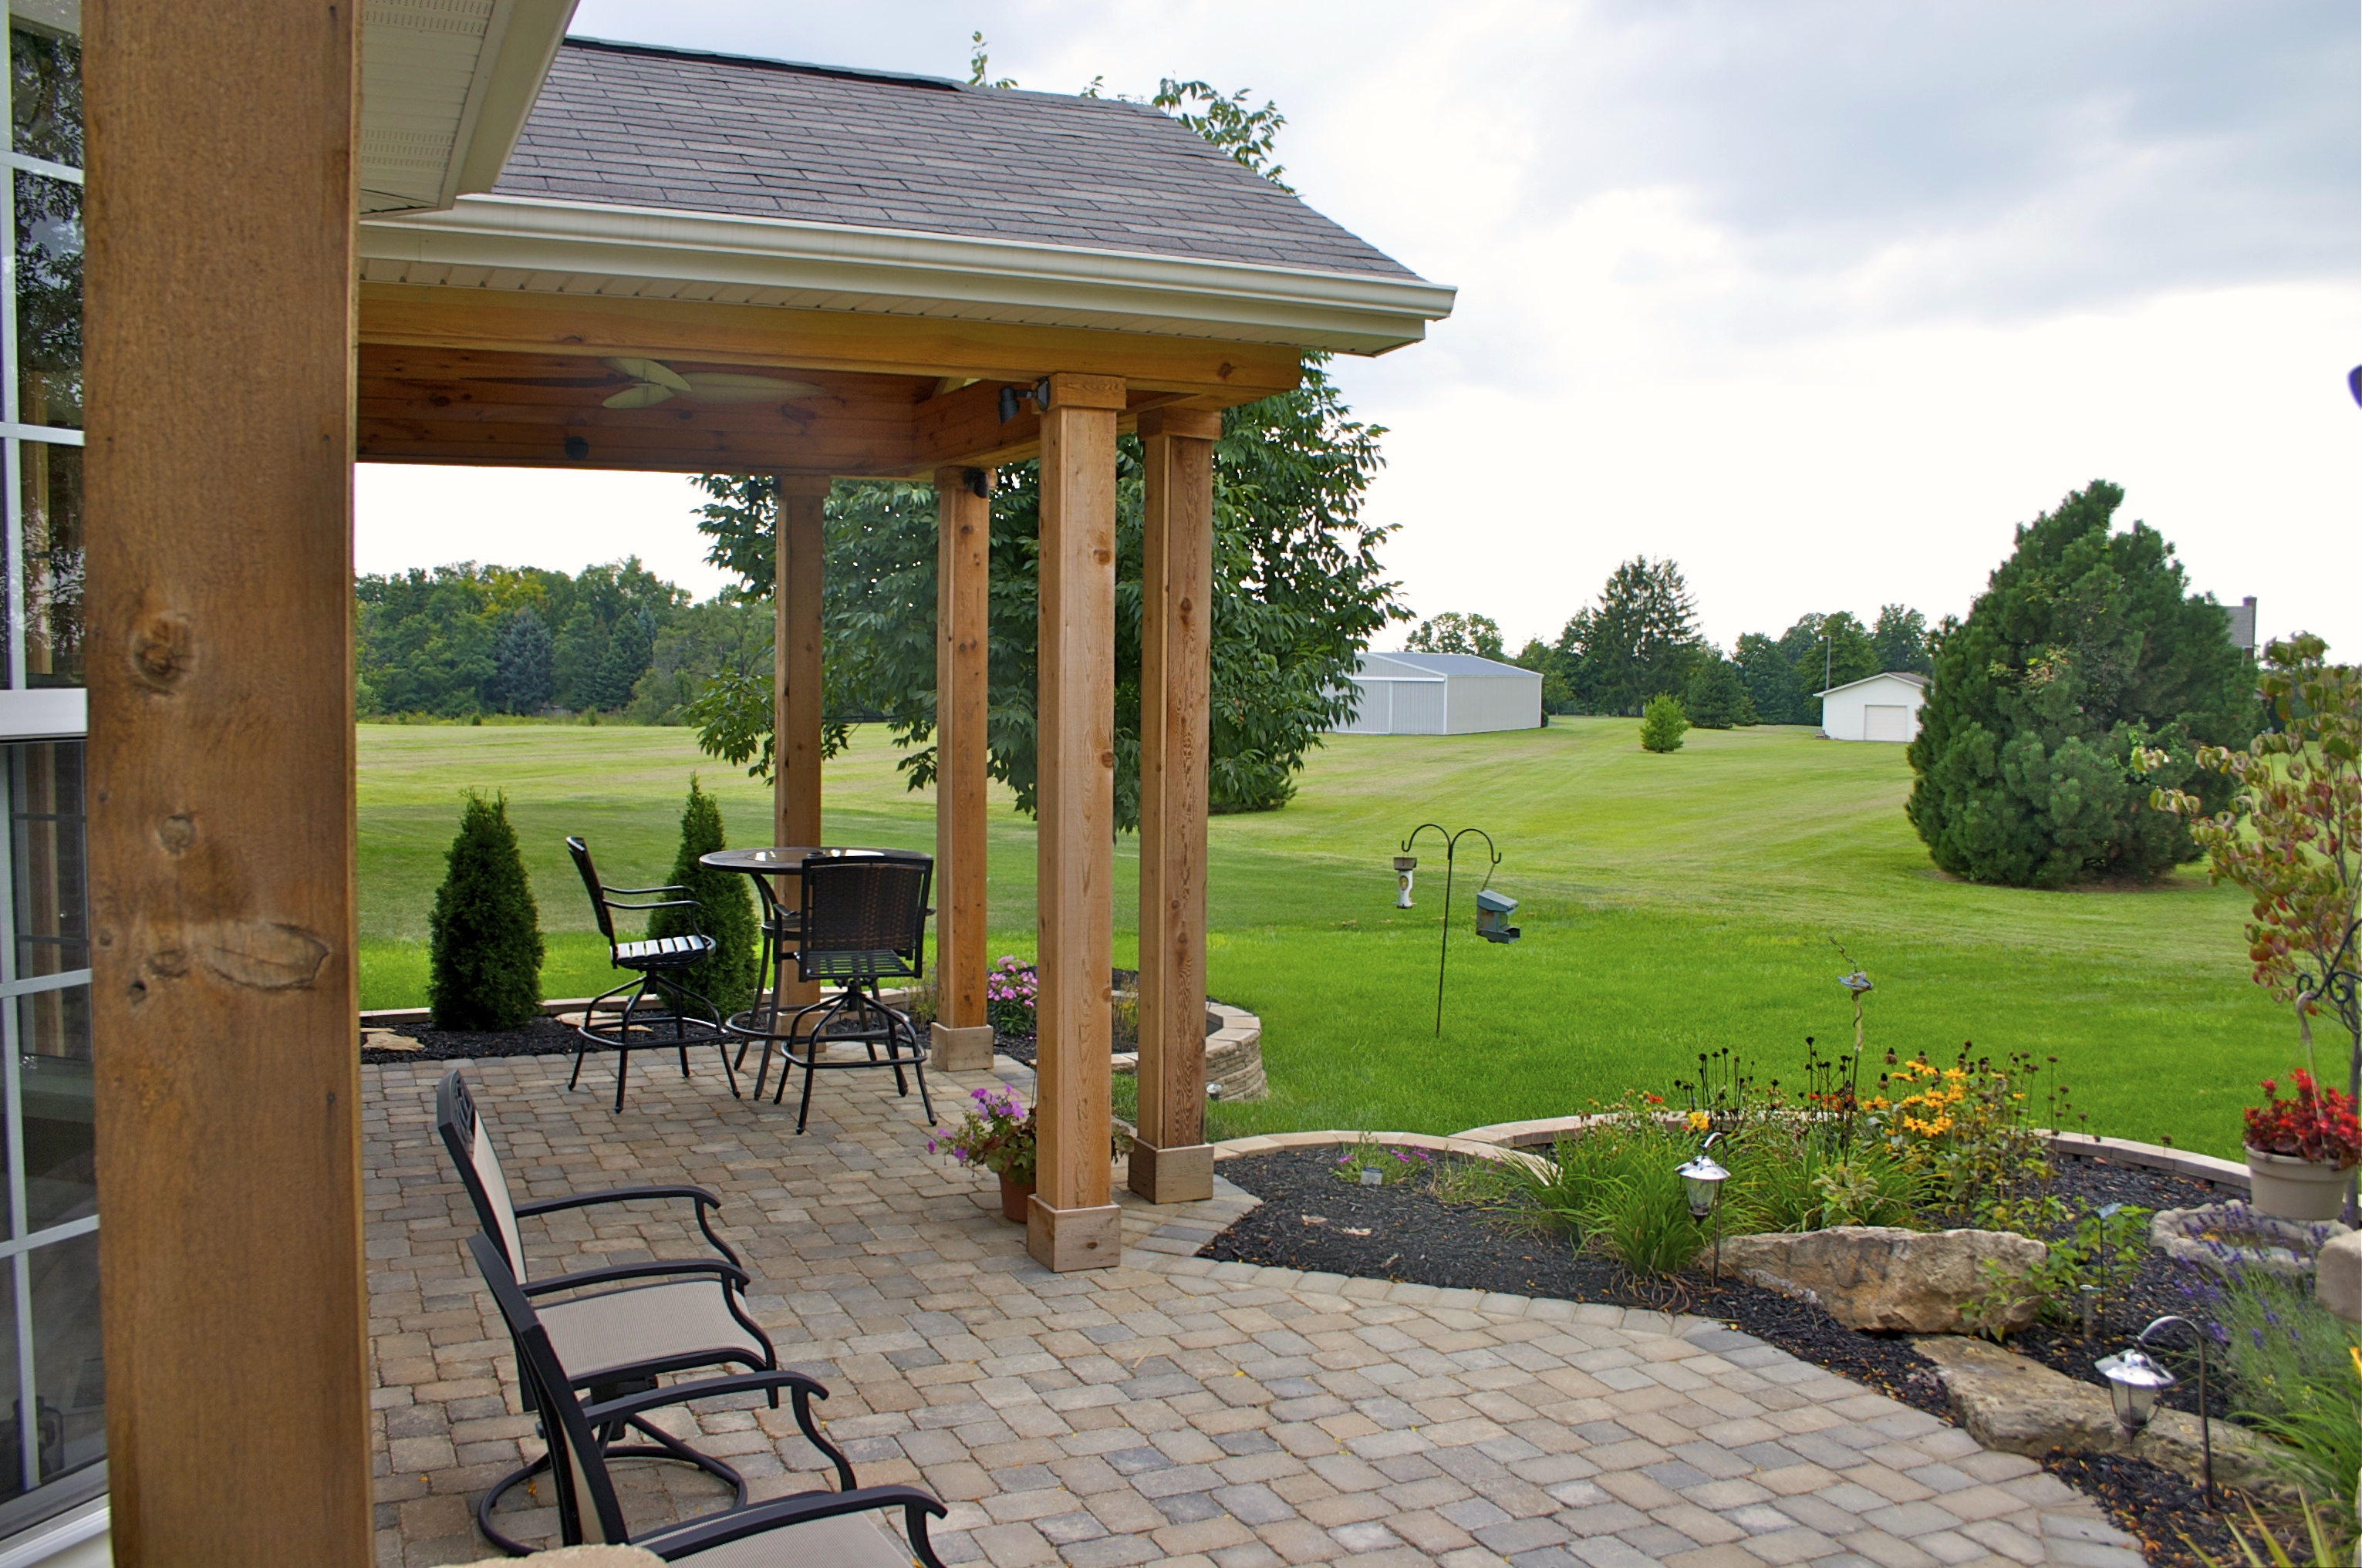 Custom Patios In Lexington & Louisville Ky  American Deck. Install Patio Stones Yourself. Install Garden Patio Doors. Patio Blocks Under Above Ground Pool. Enclosed Patio Prices. Cement Patio Paint Ideas. Patio Doors And Windows Pictures. Patio Restaurant Jakarta. Backyard Patio And Pool Ideas